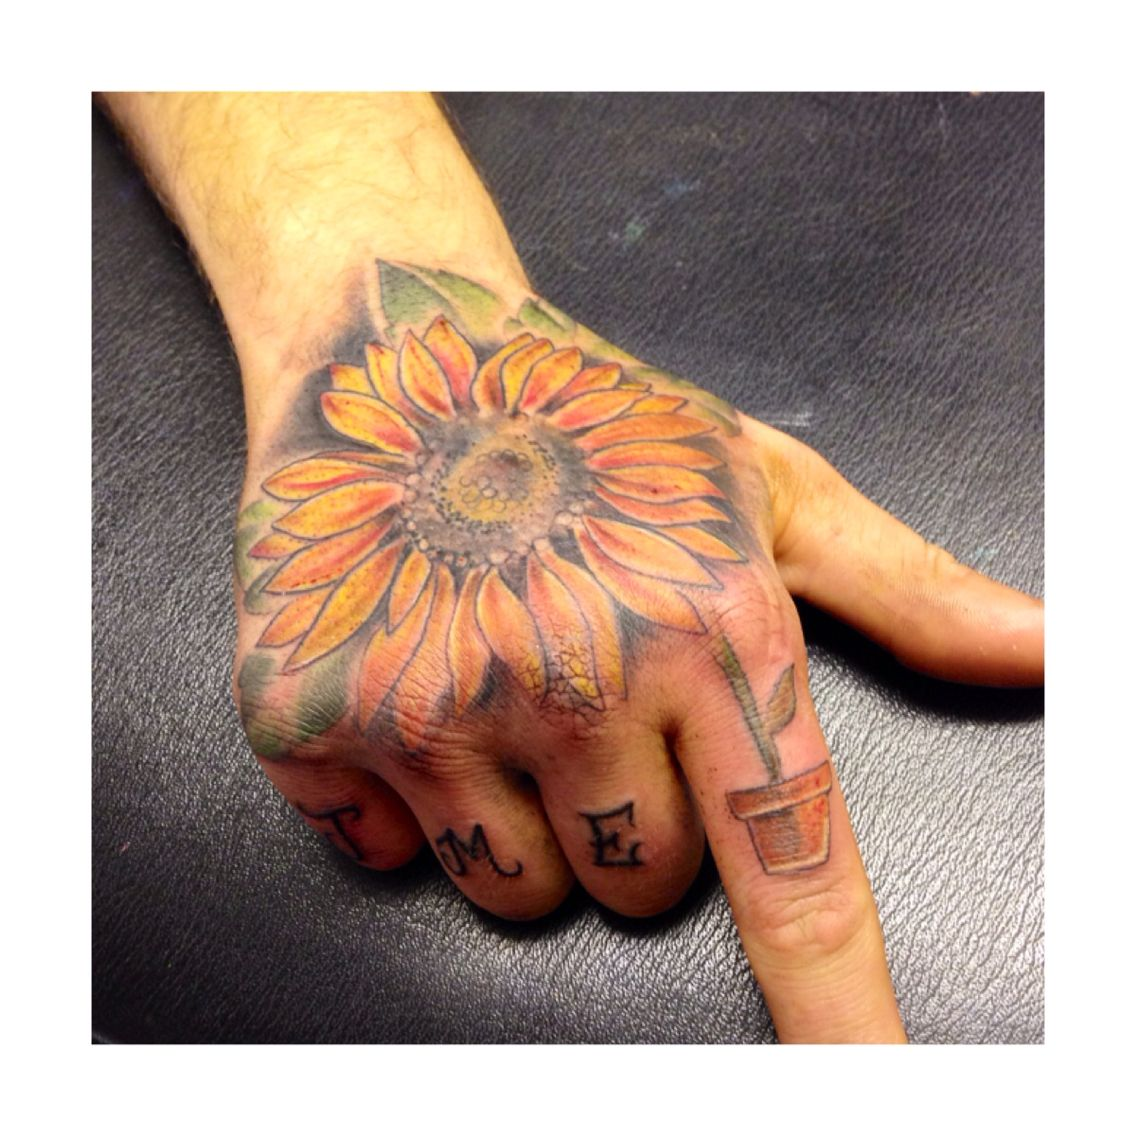 Sunflower hand tattoo Tattoos, Hand tattoos, Sunflower